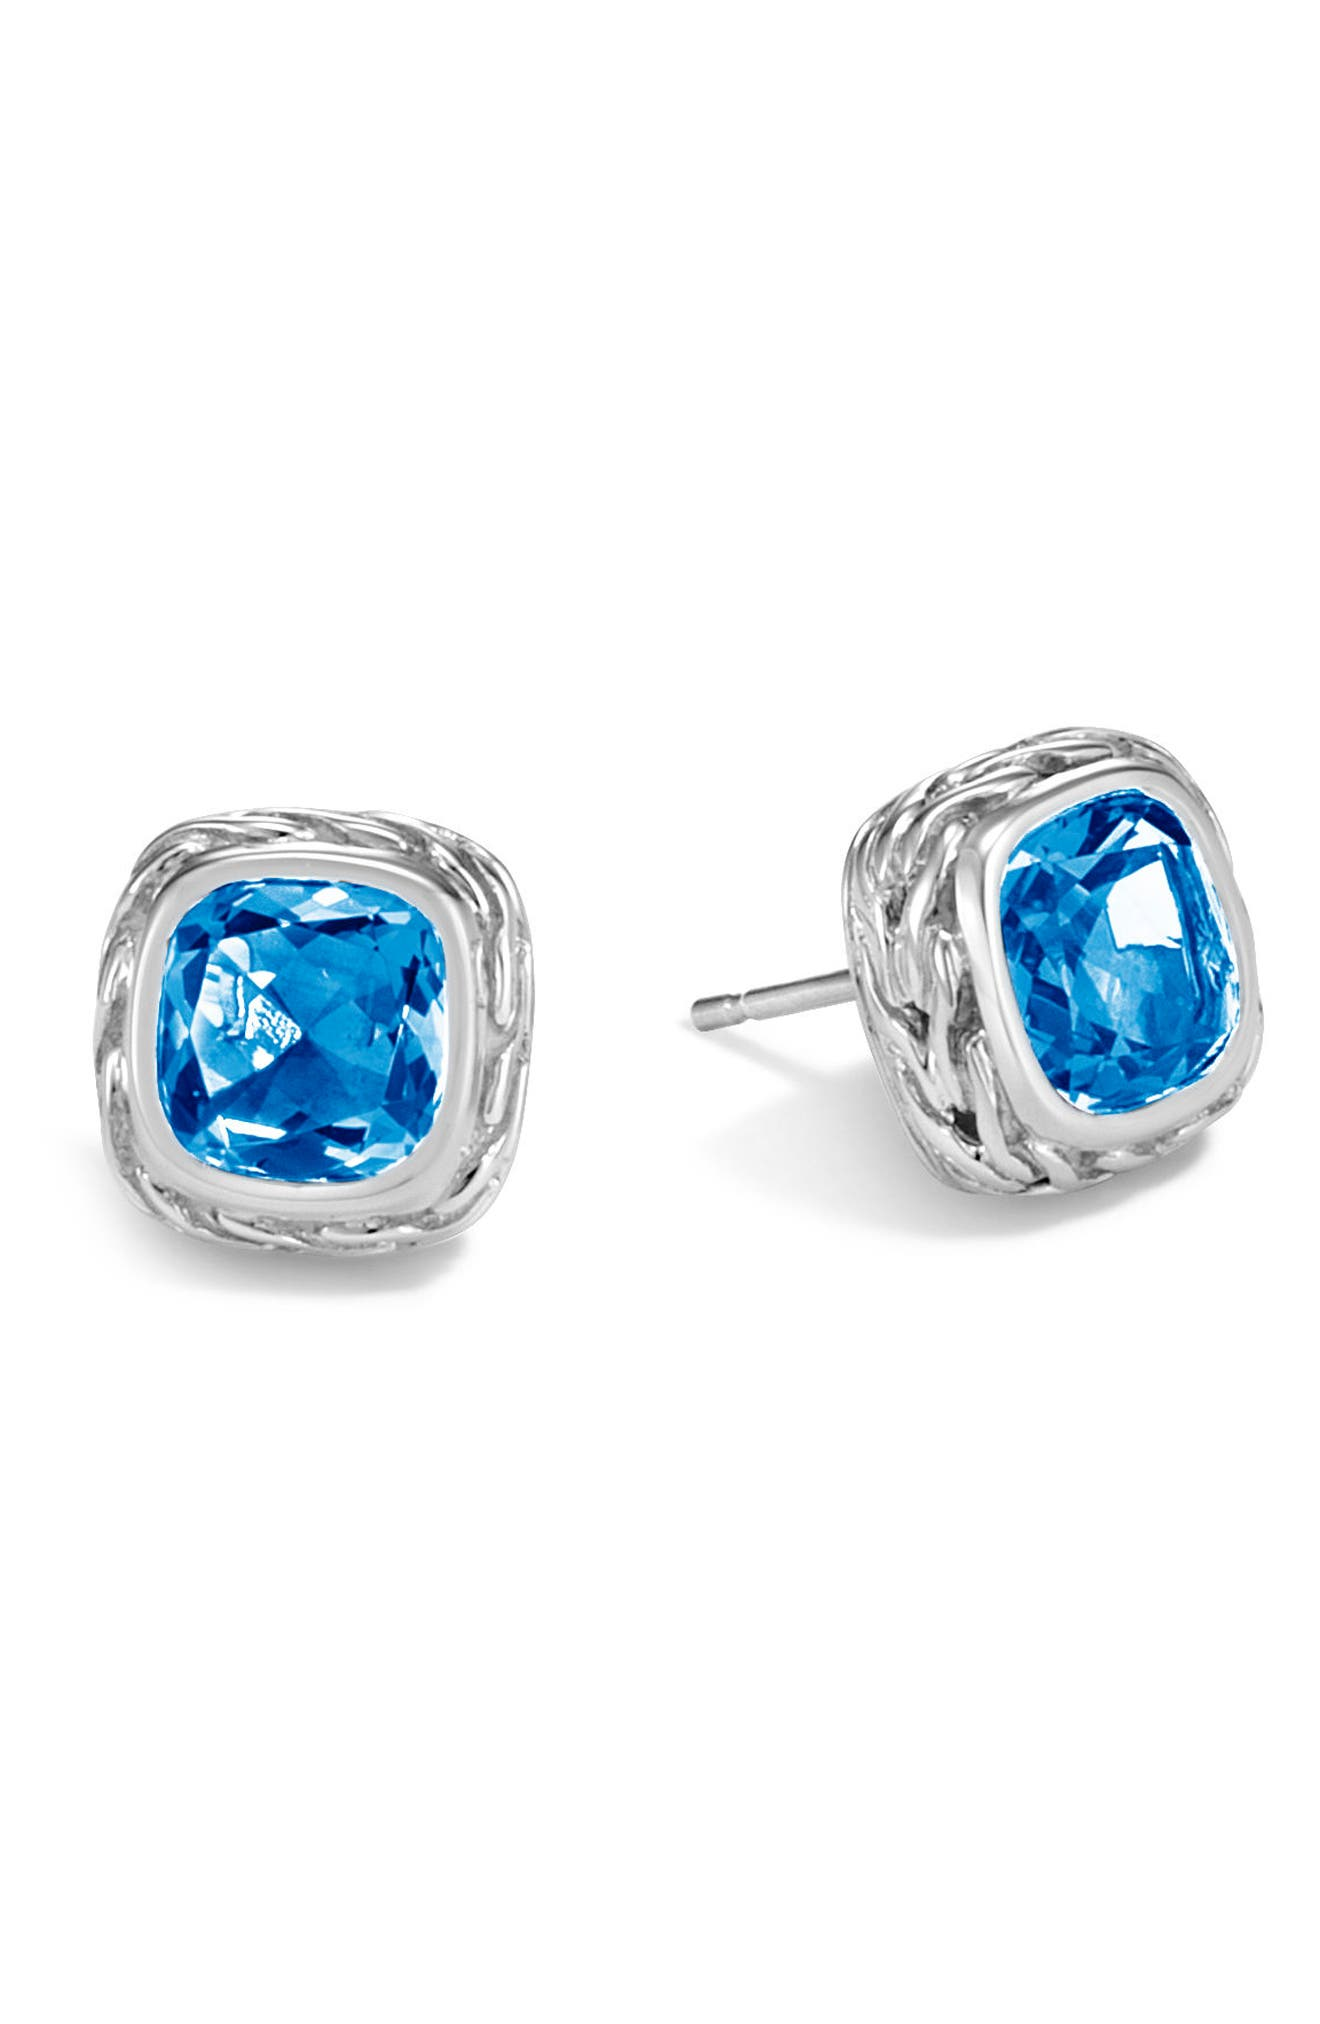 Magic Cut Blue Topaz Stud Earrings,                             Main thumbnail 1, color,                             Silver/ London Blue Topaz